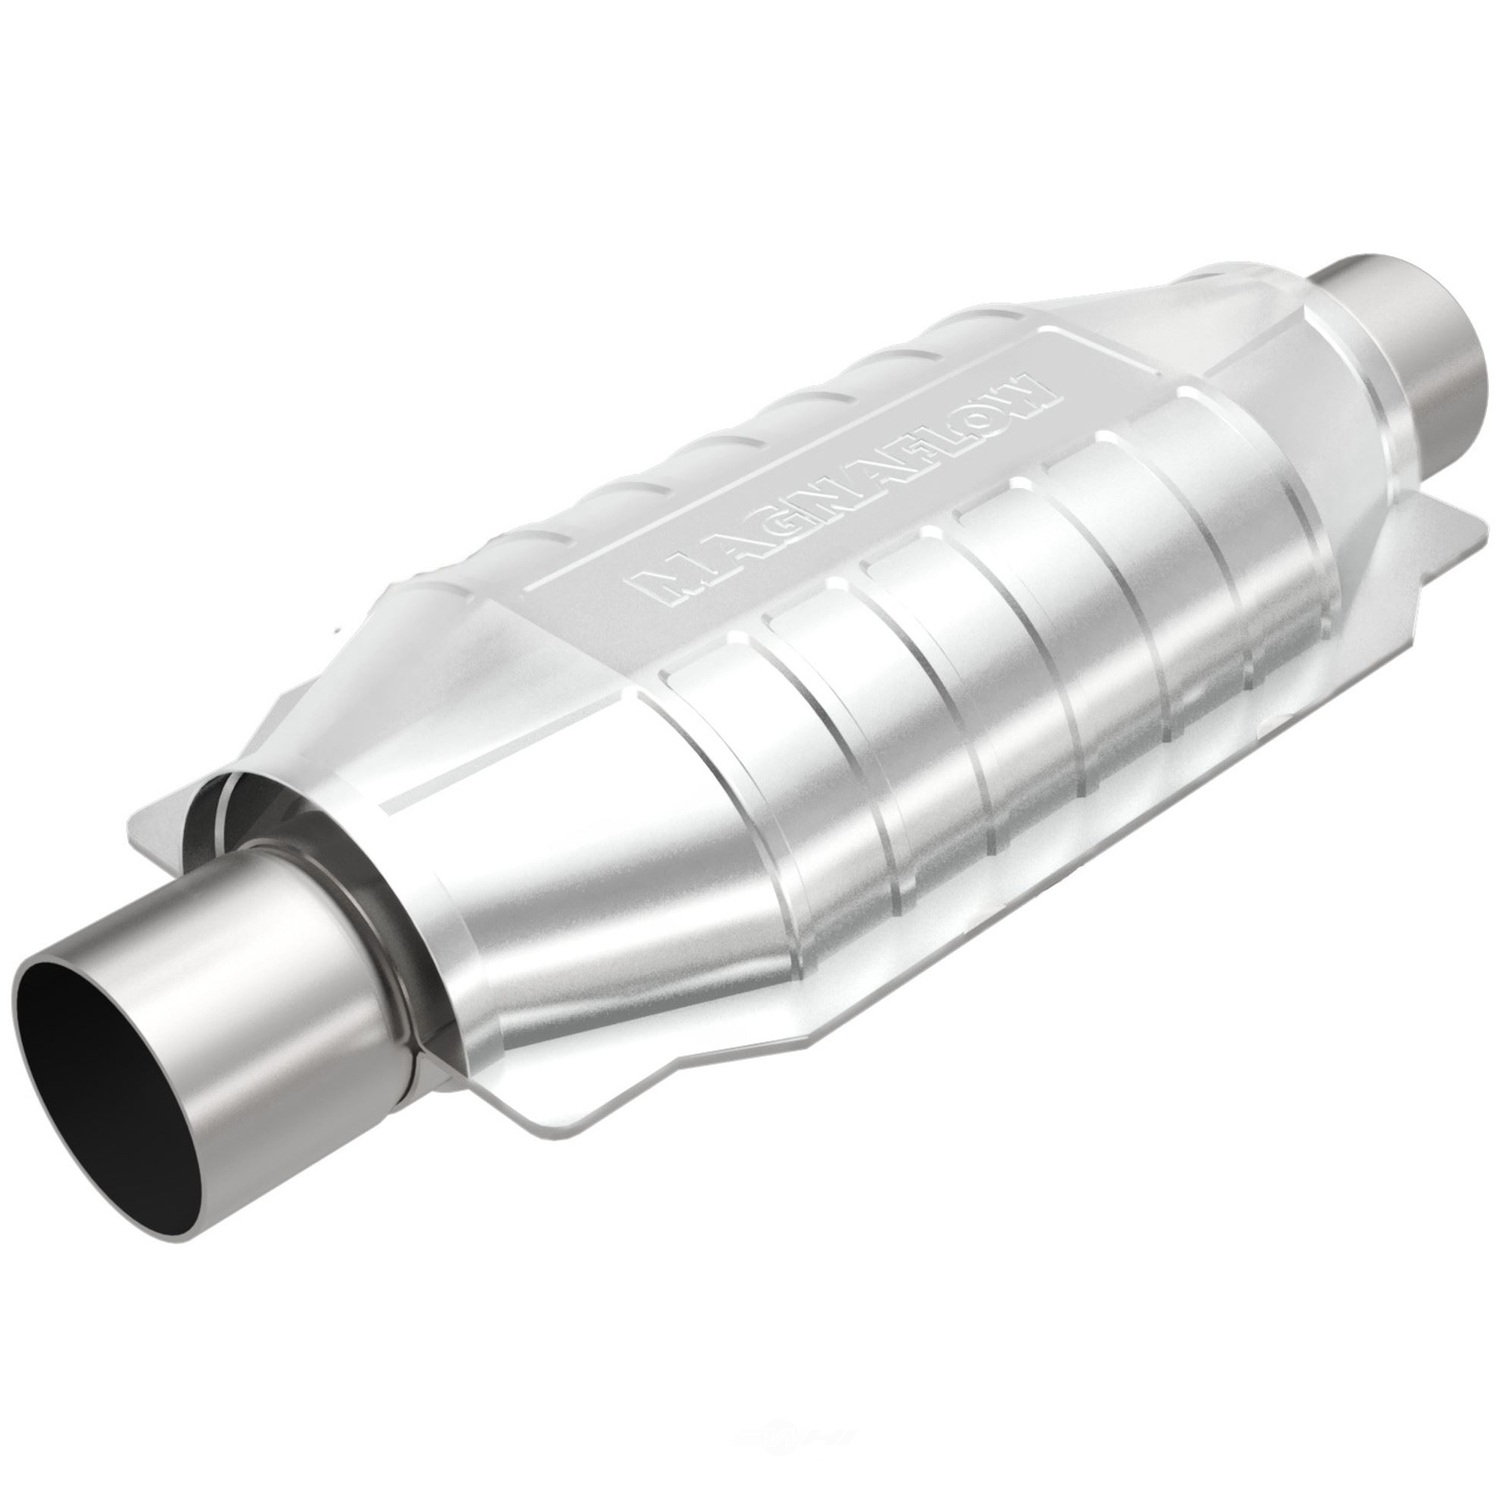 BOSAL 49 STATE CONVERTERS - Bosal Federal Universal Pre-OBDII Catalytic Converter - BSF 091-2031